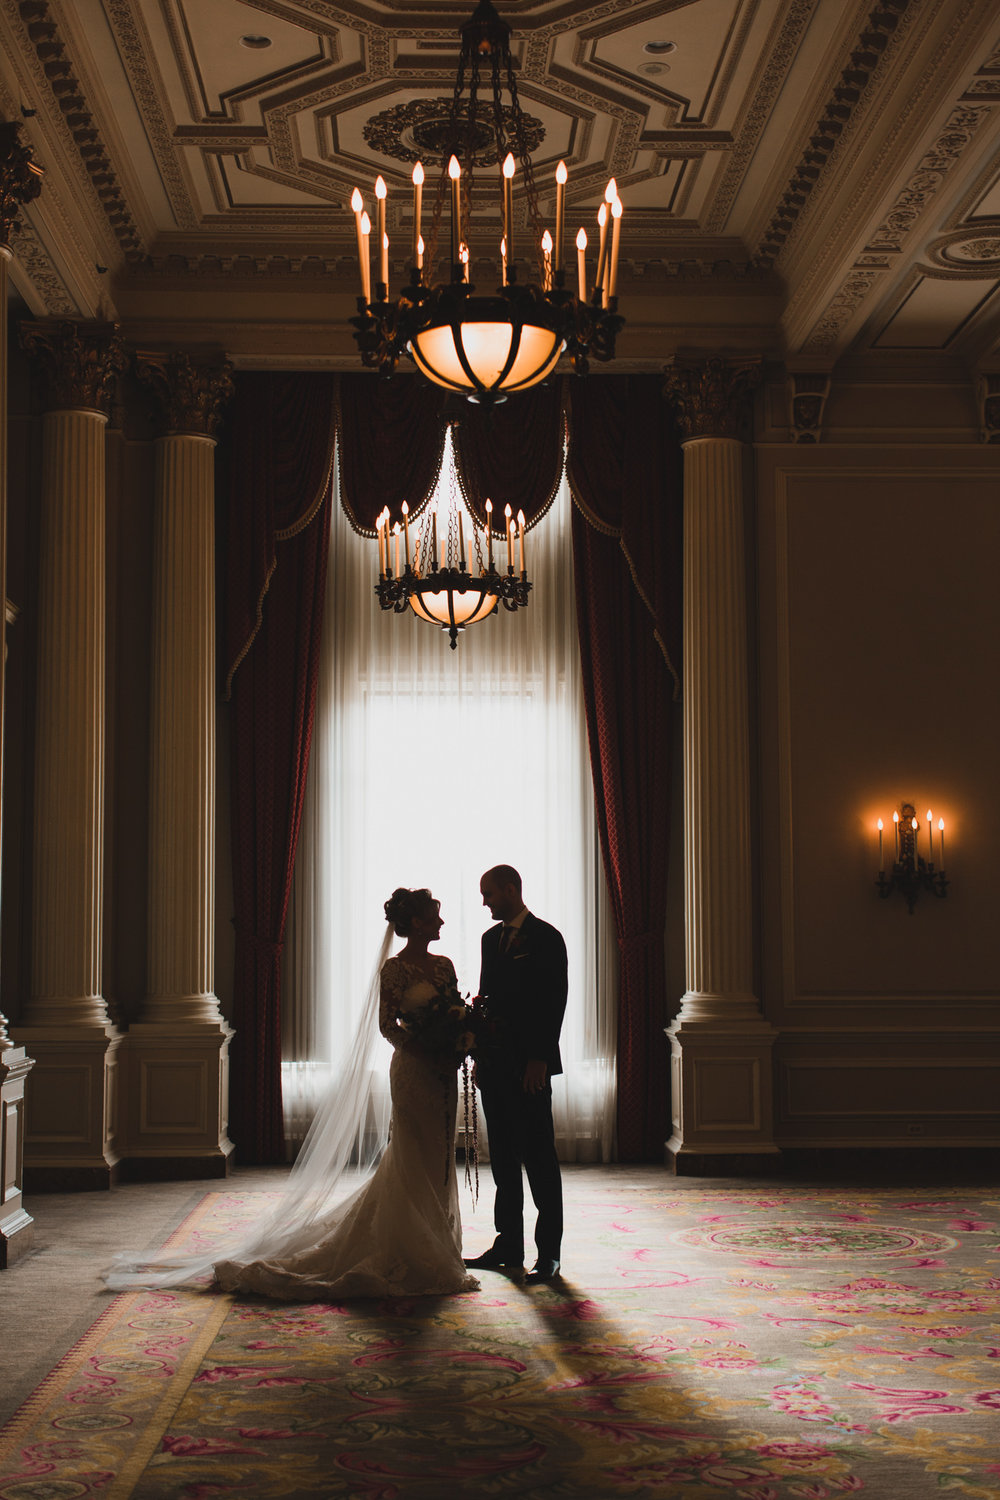 Alternative, moody wedding photographer Ottawa